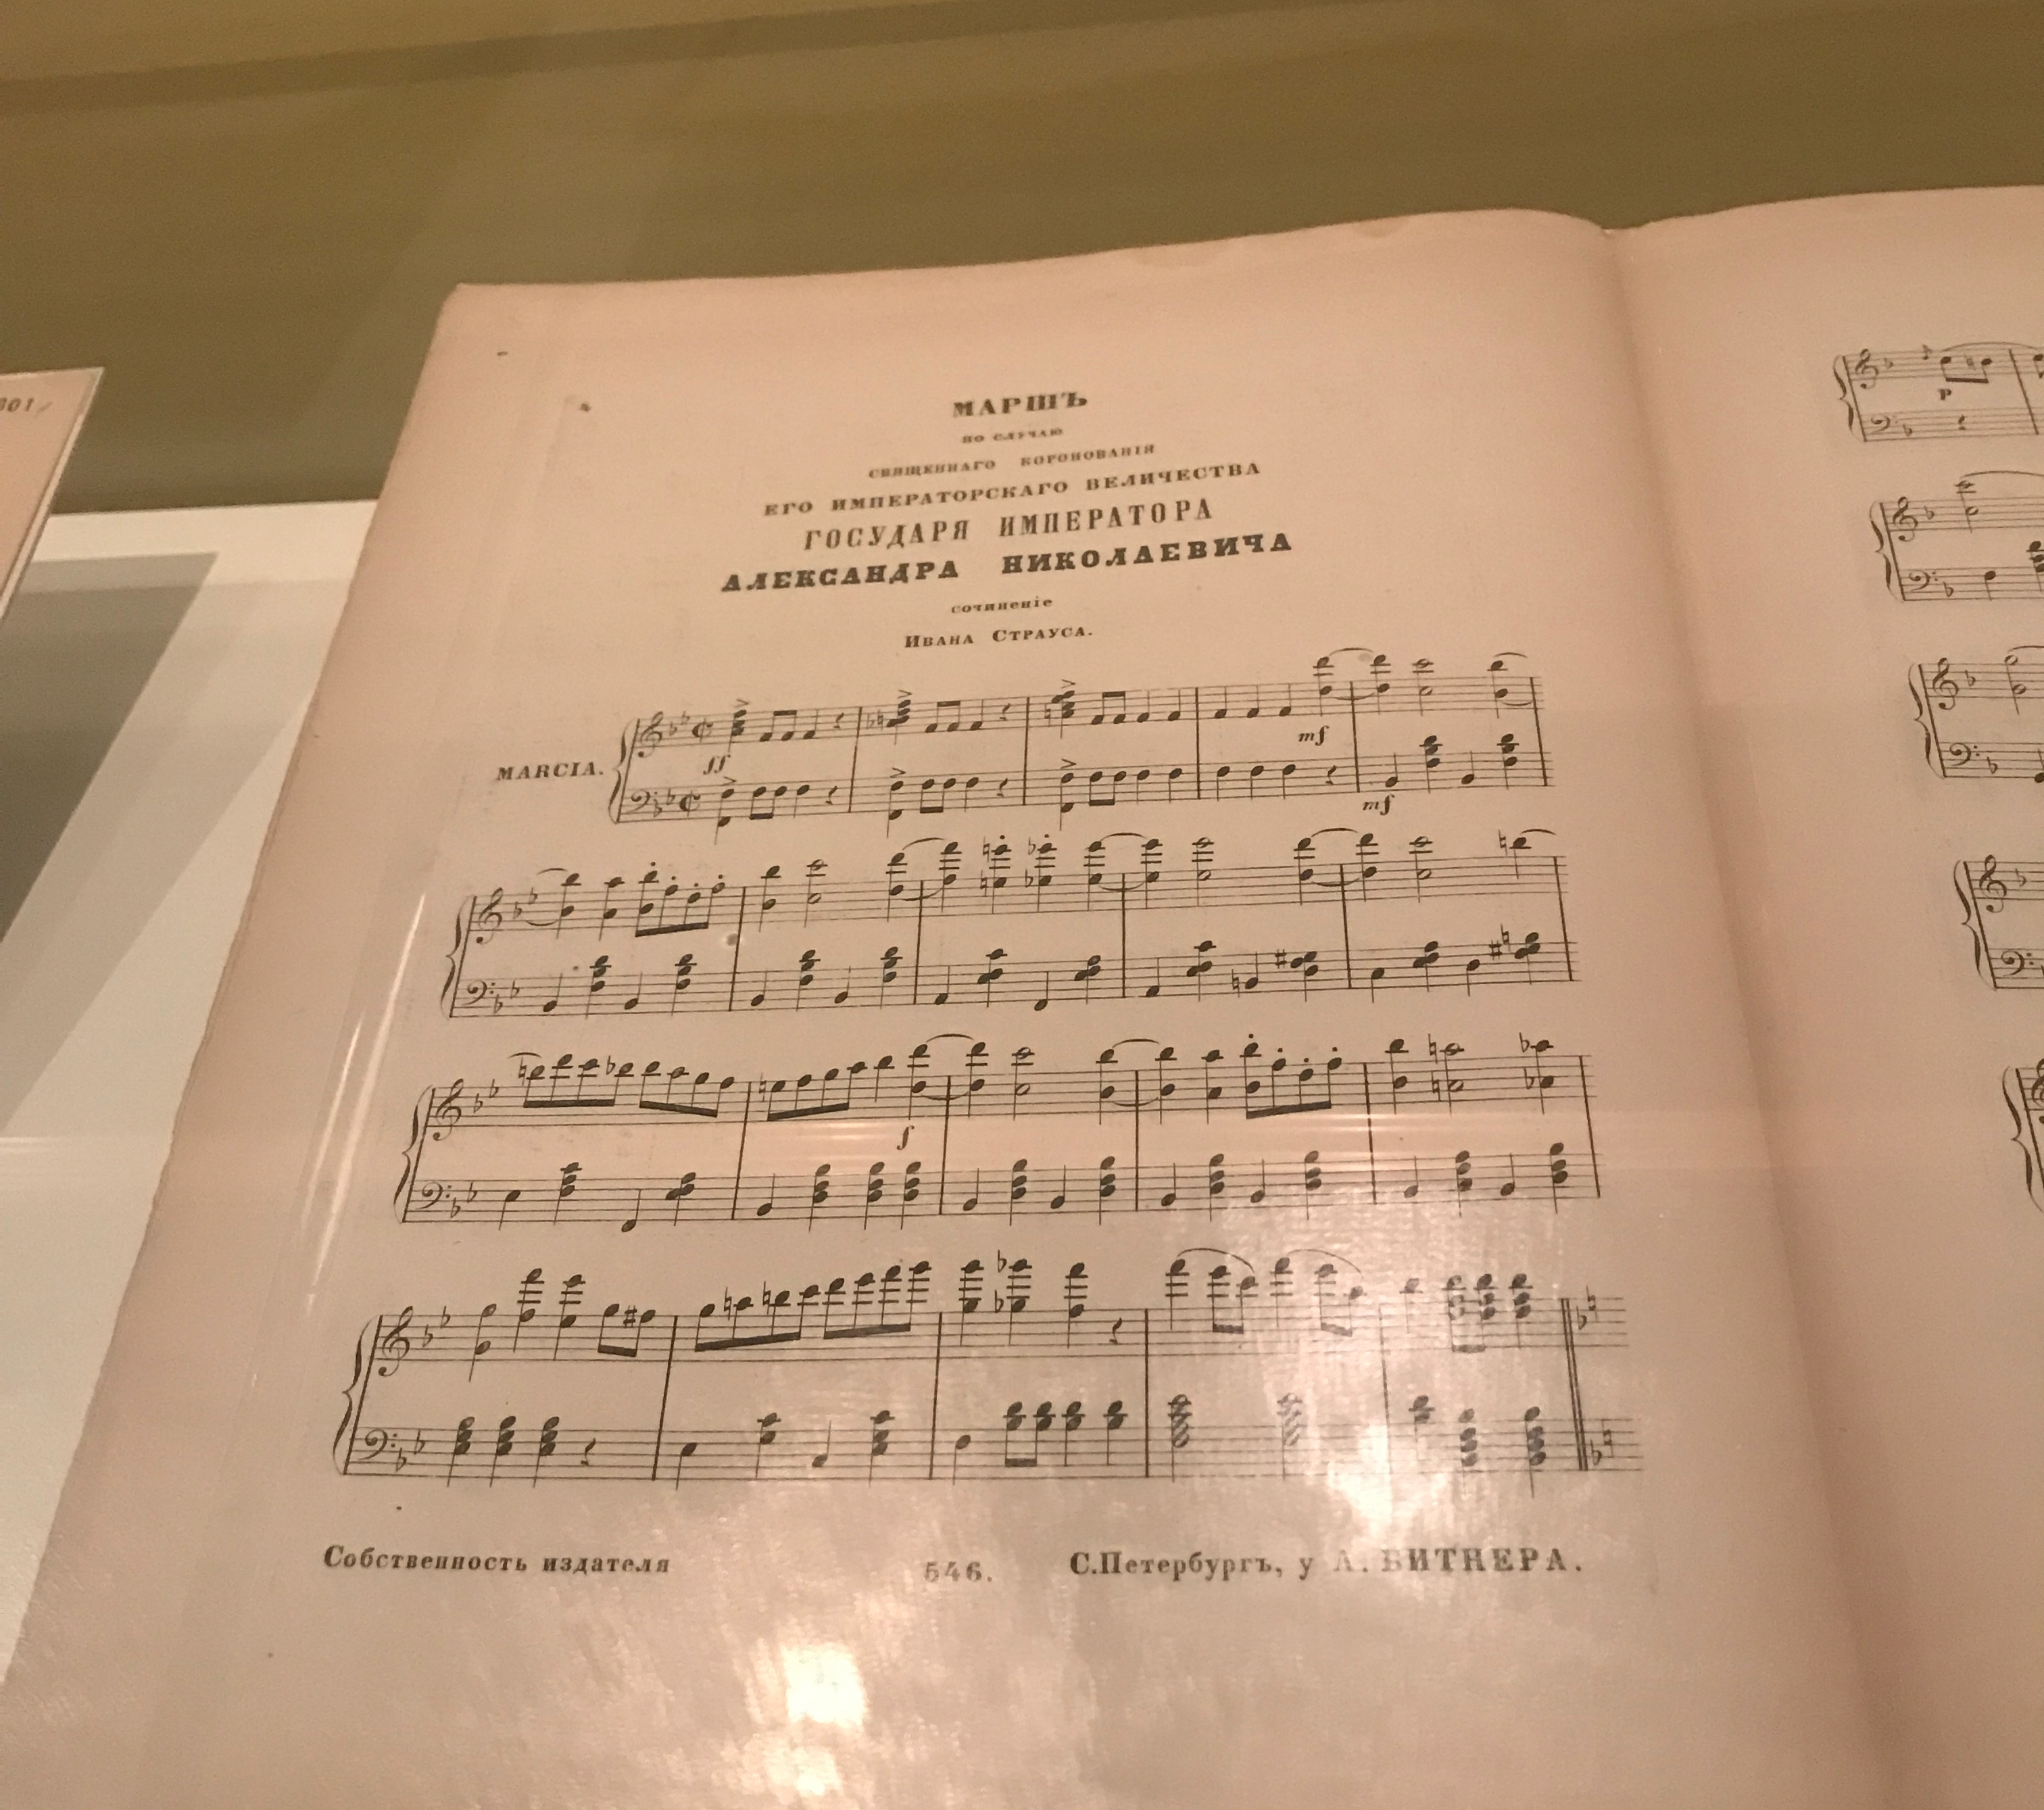 Strauss' Sheet Music